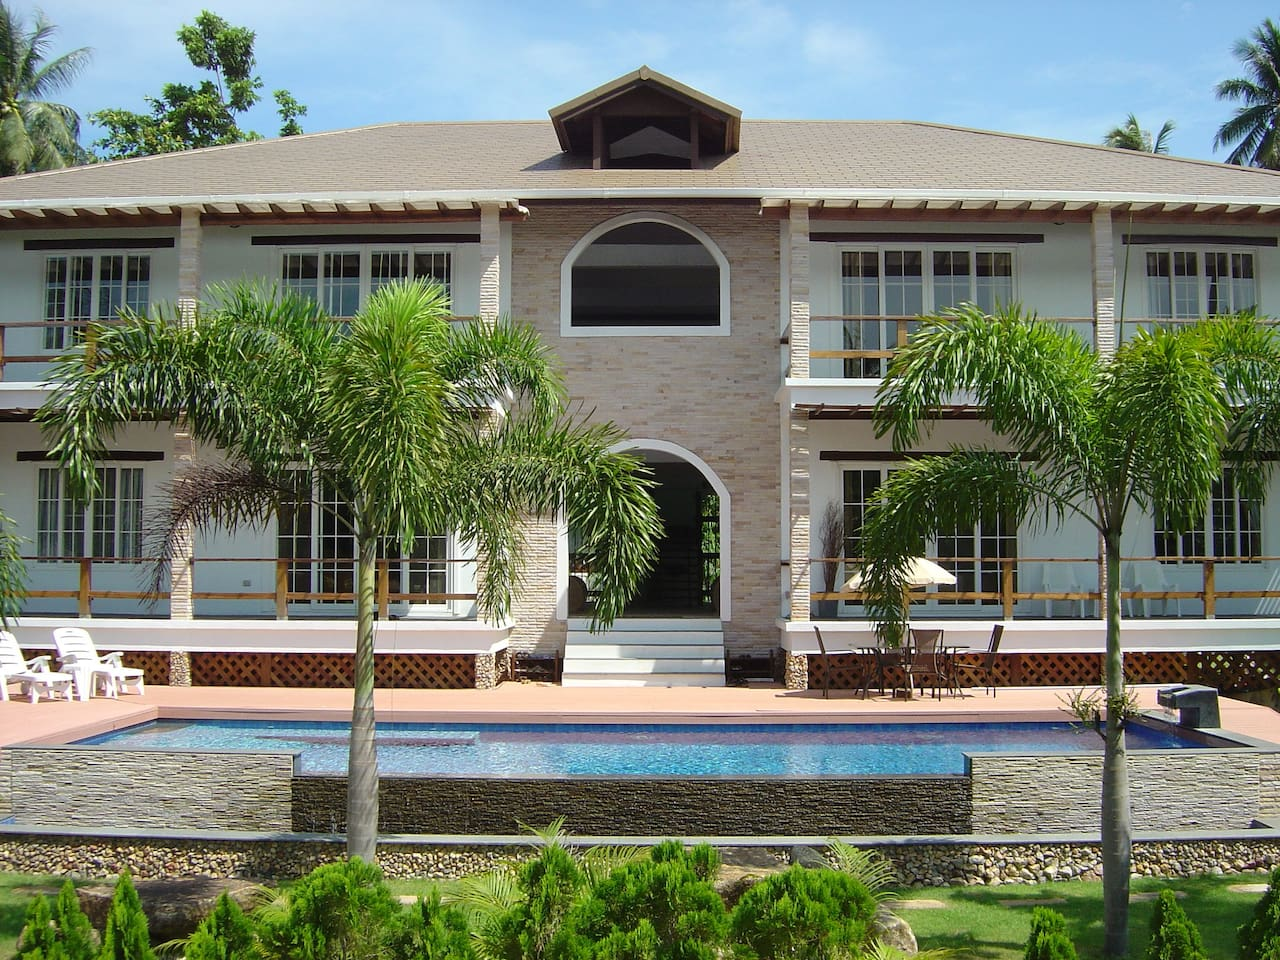 Main Entrance with Pool Deck